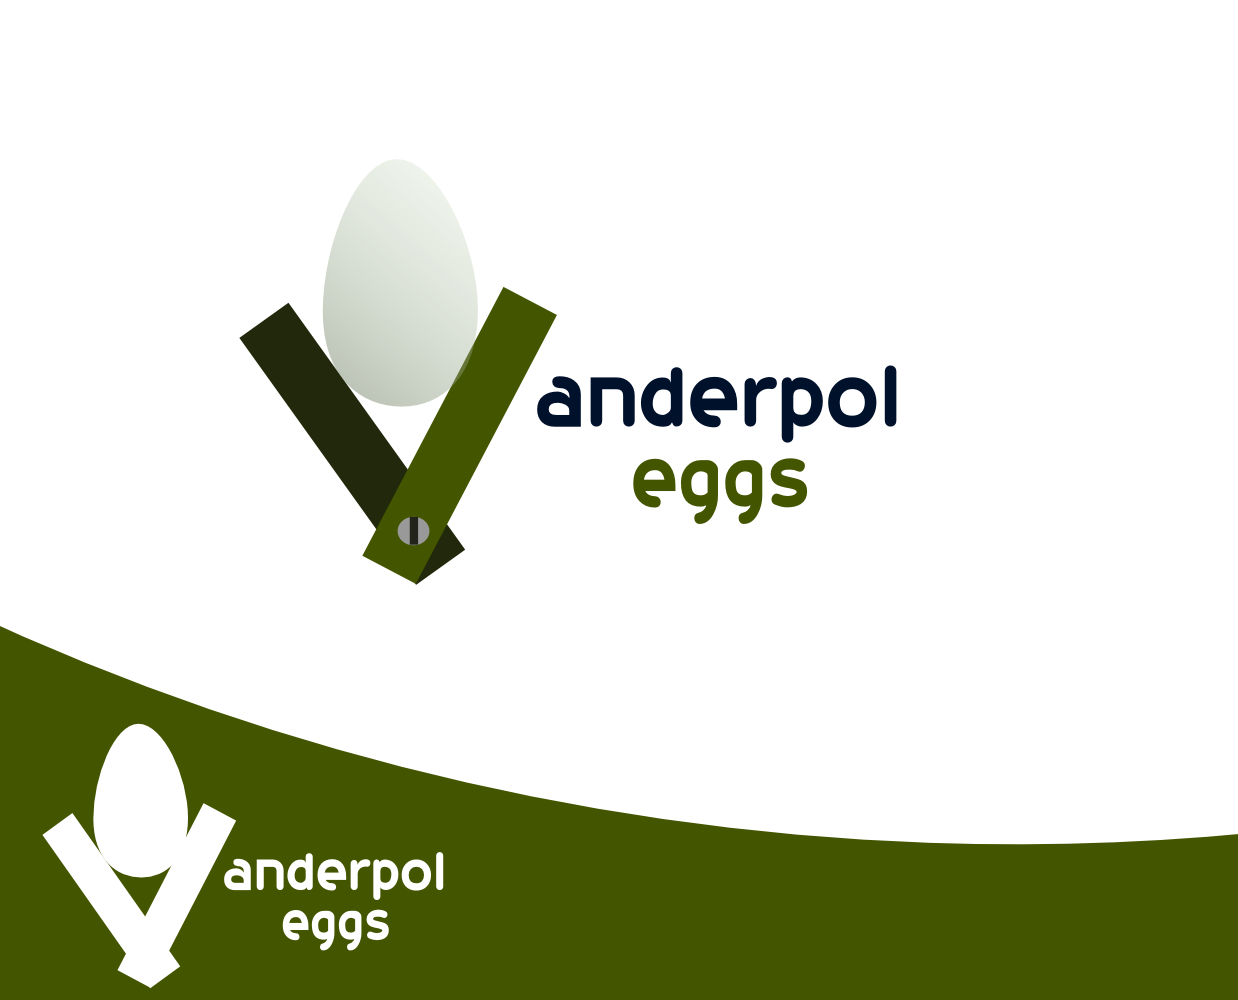 Logo Design by Arindam Khanda - Entry No. 67 in the Logo Design Contest Creative Logo Design for Vanderpol Food Group.